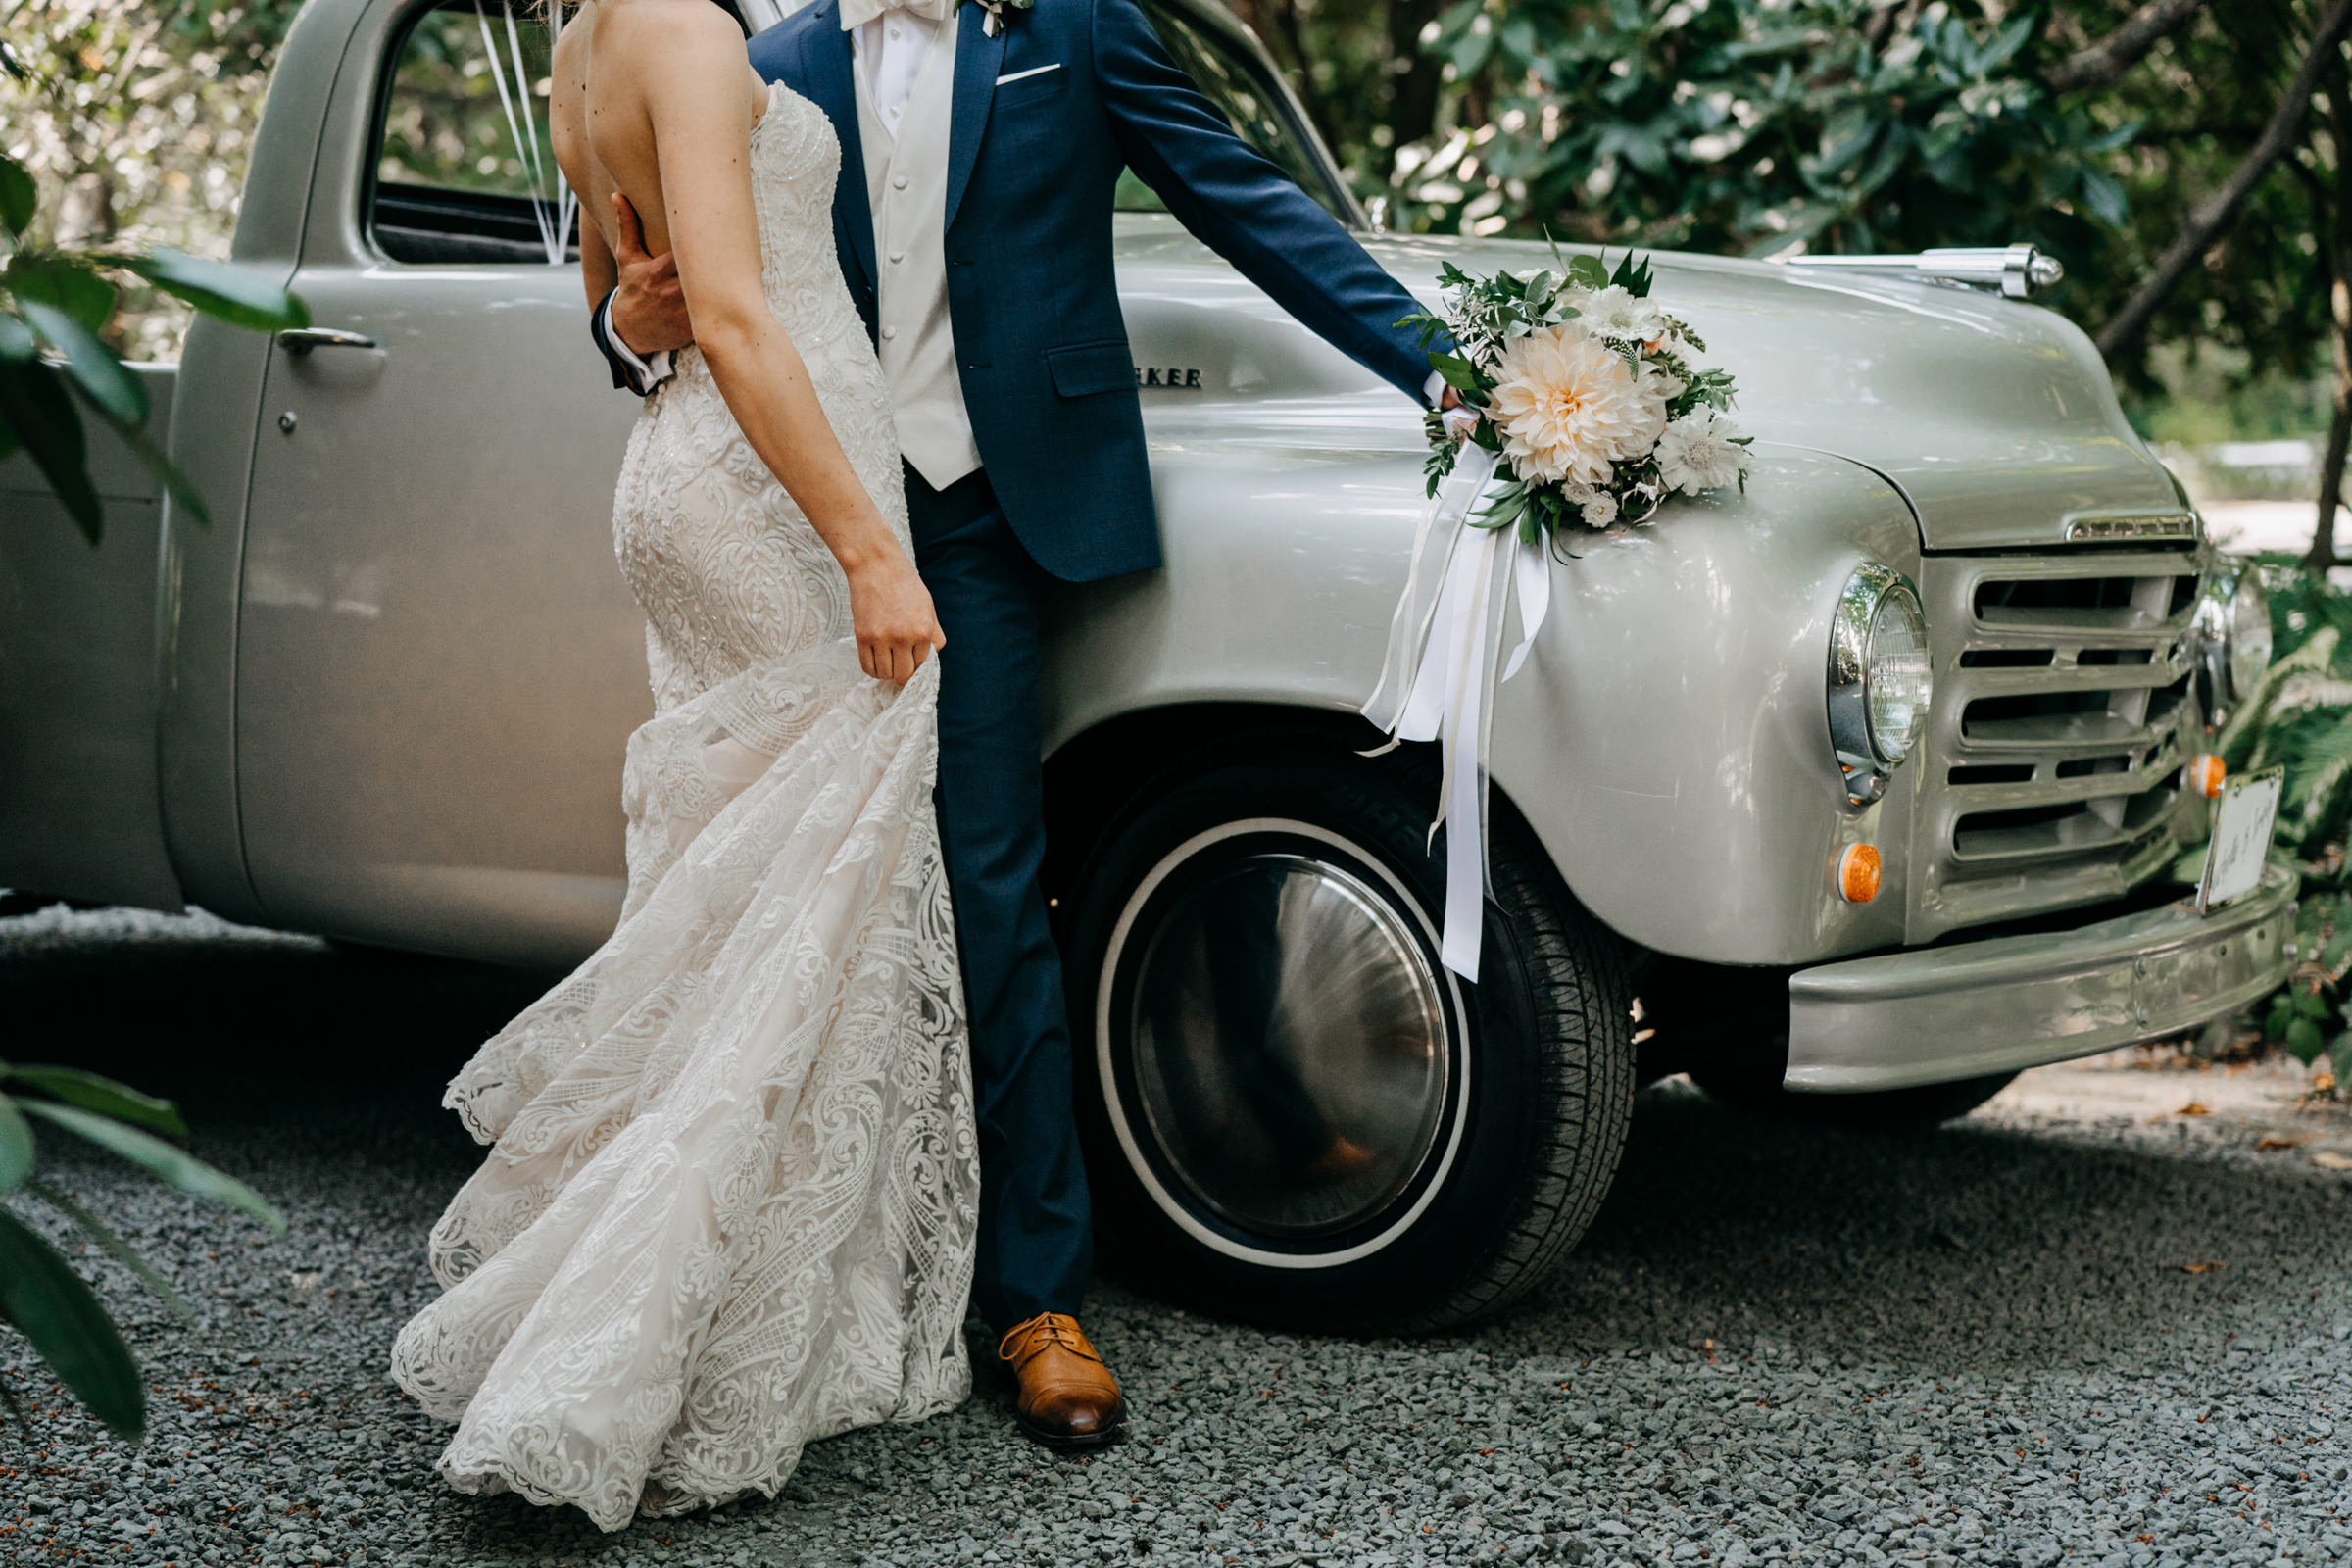 Bride and groom embrace against silver vintage Studebaker truck - photo by Sasha Reiko